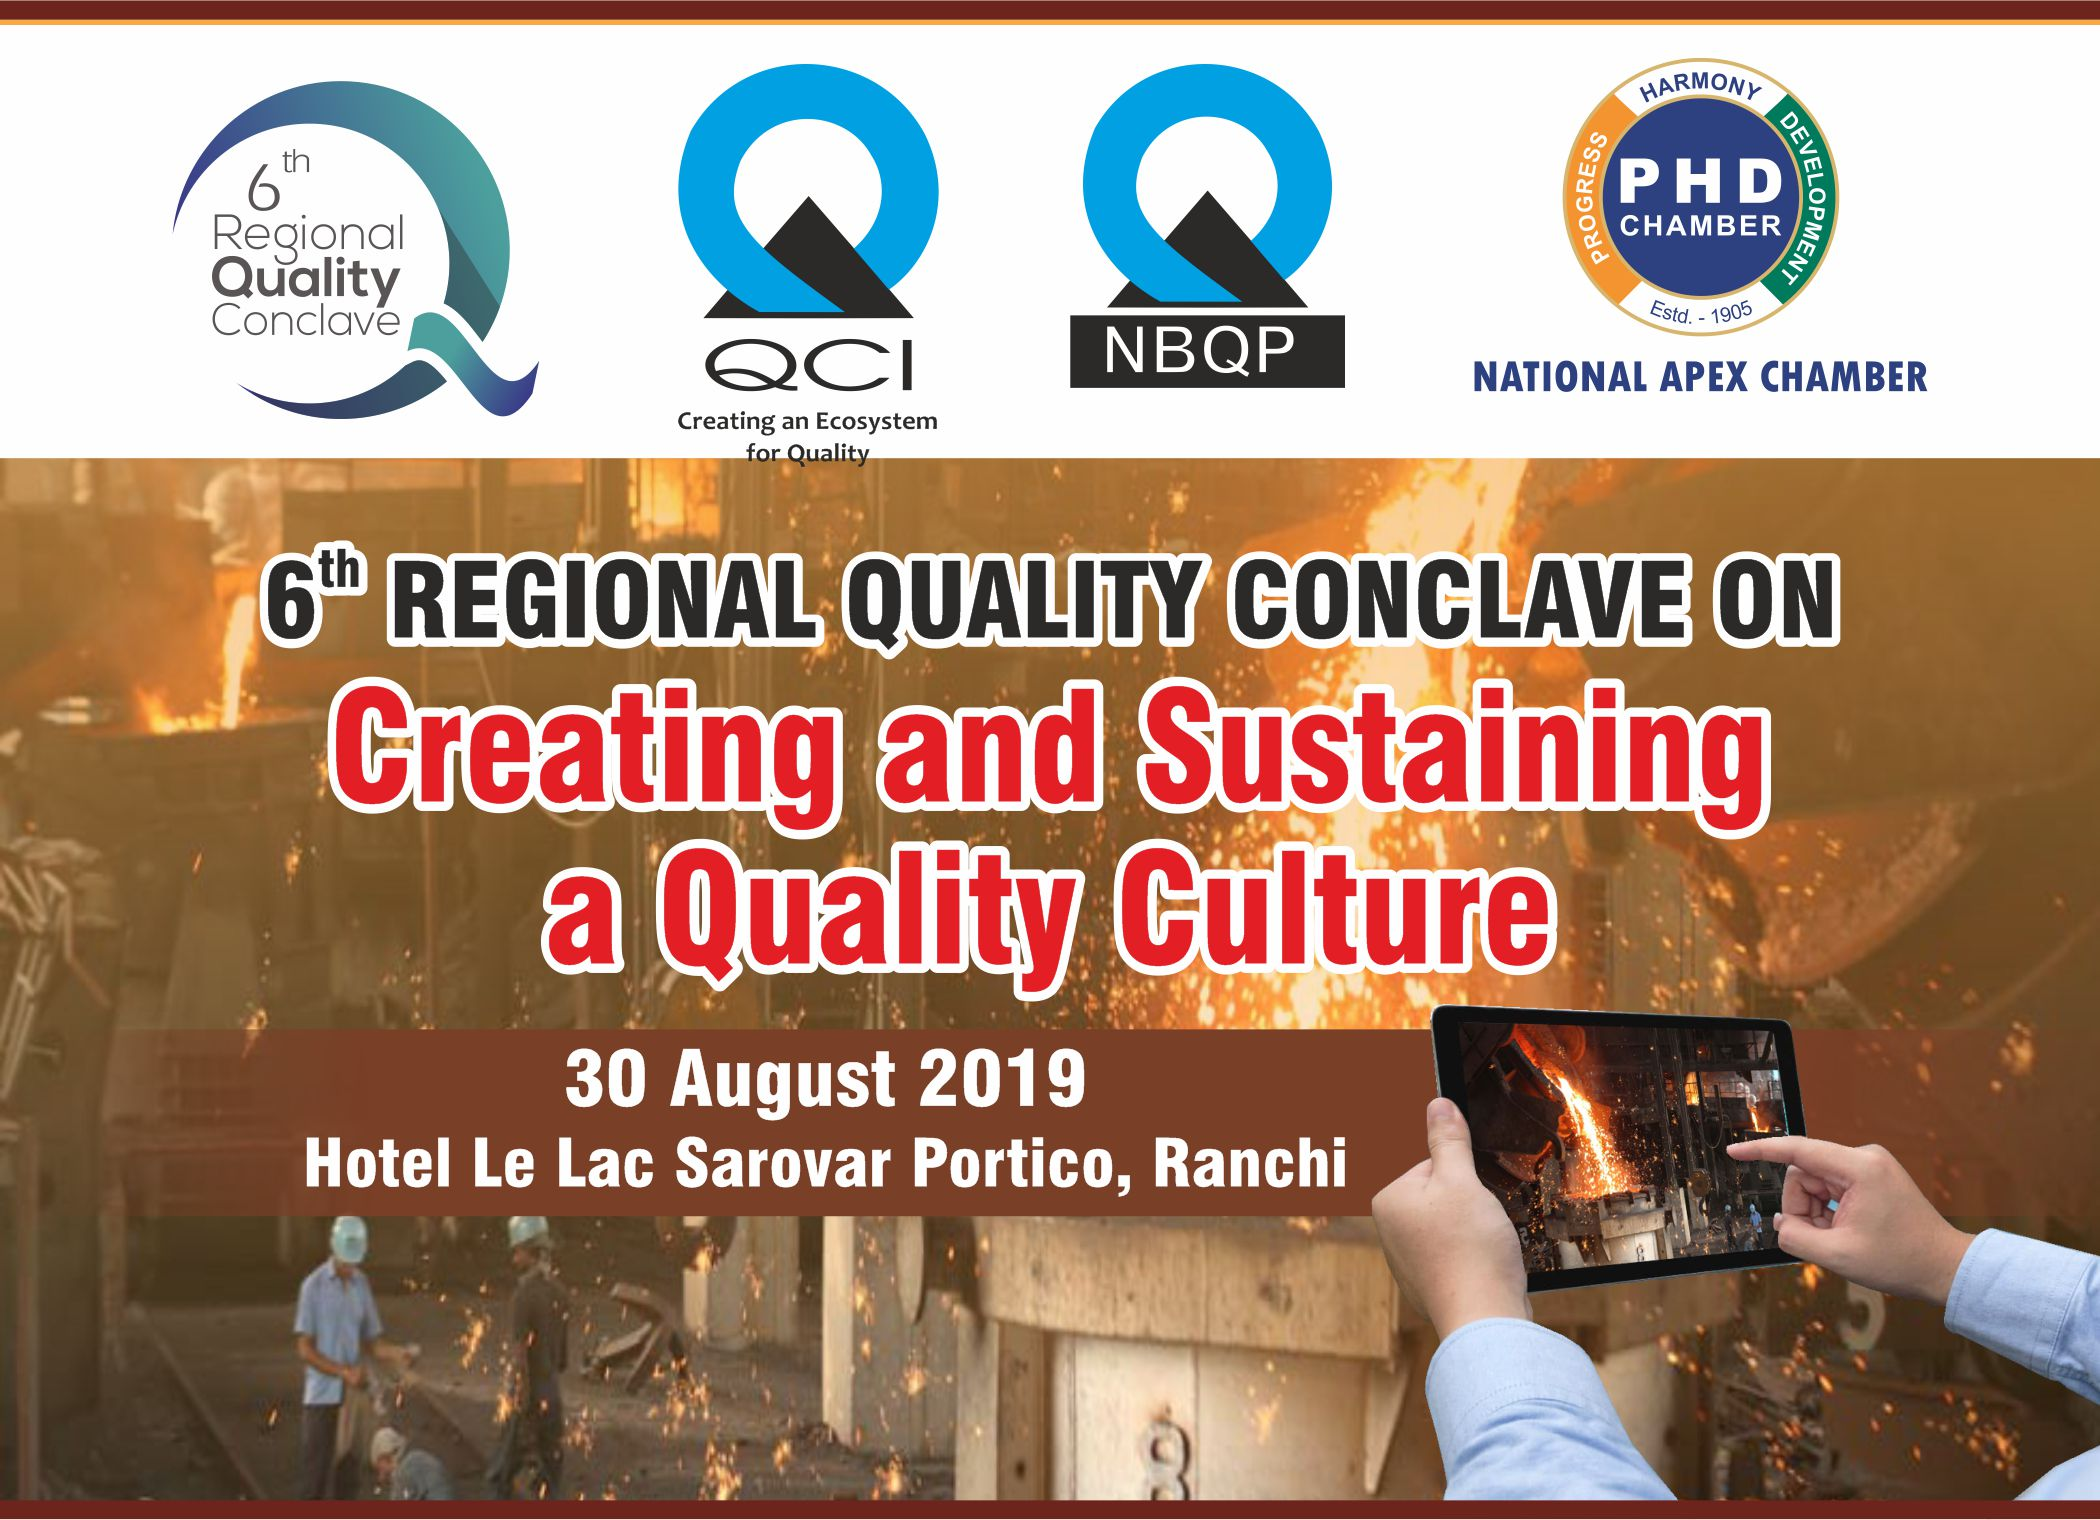 6th Regional Quality Conclave On Creating And Sustaining A Quality Culture